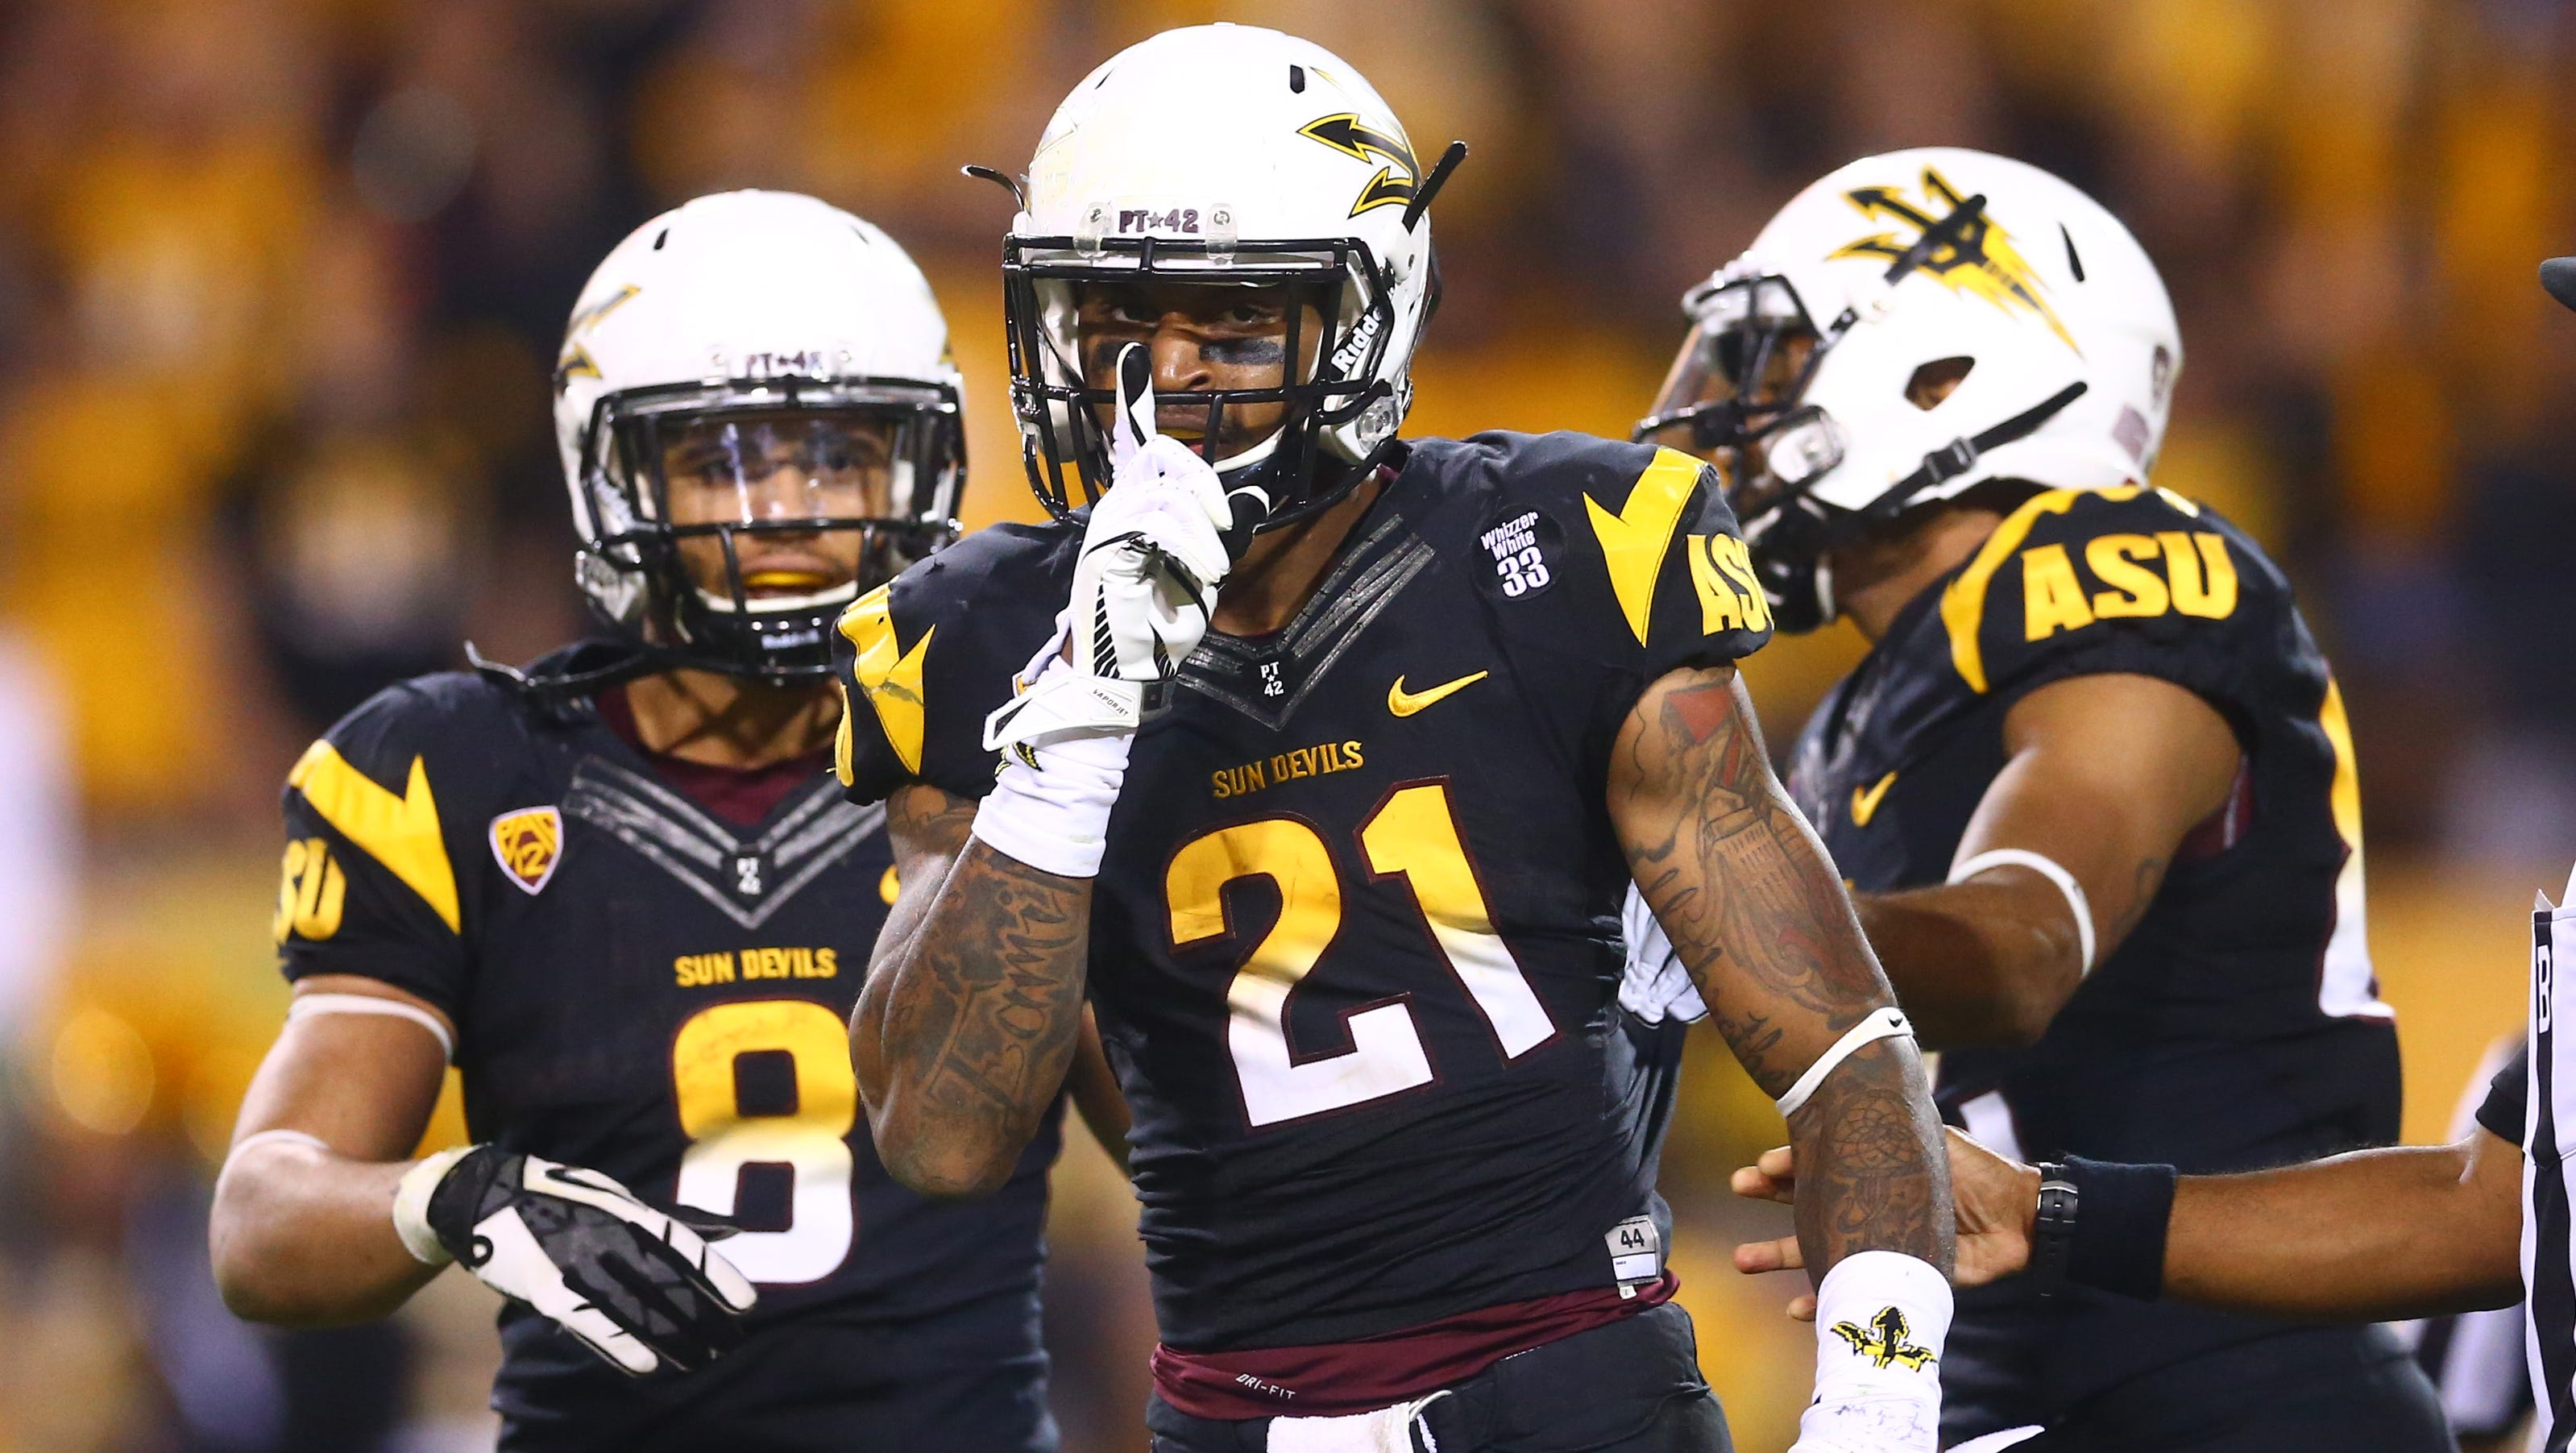 Strong Alexander Lead Sun Devils Wide Receivers